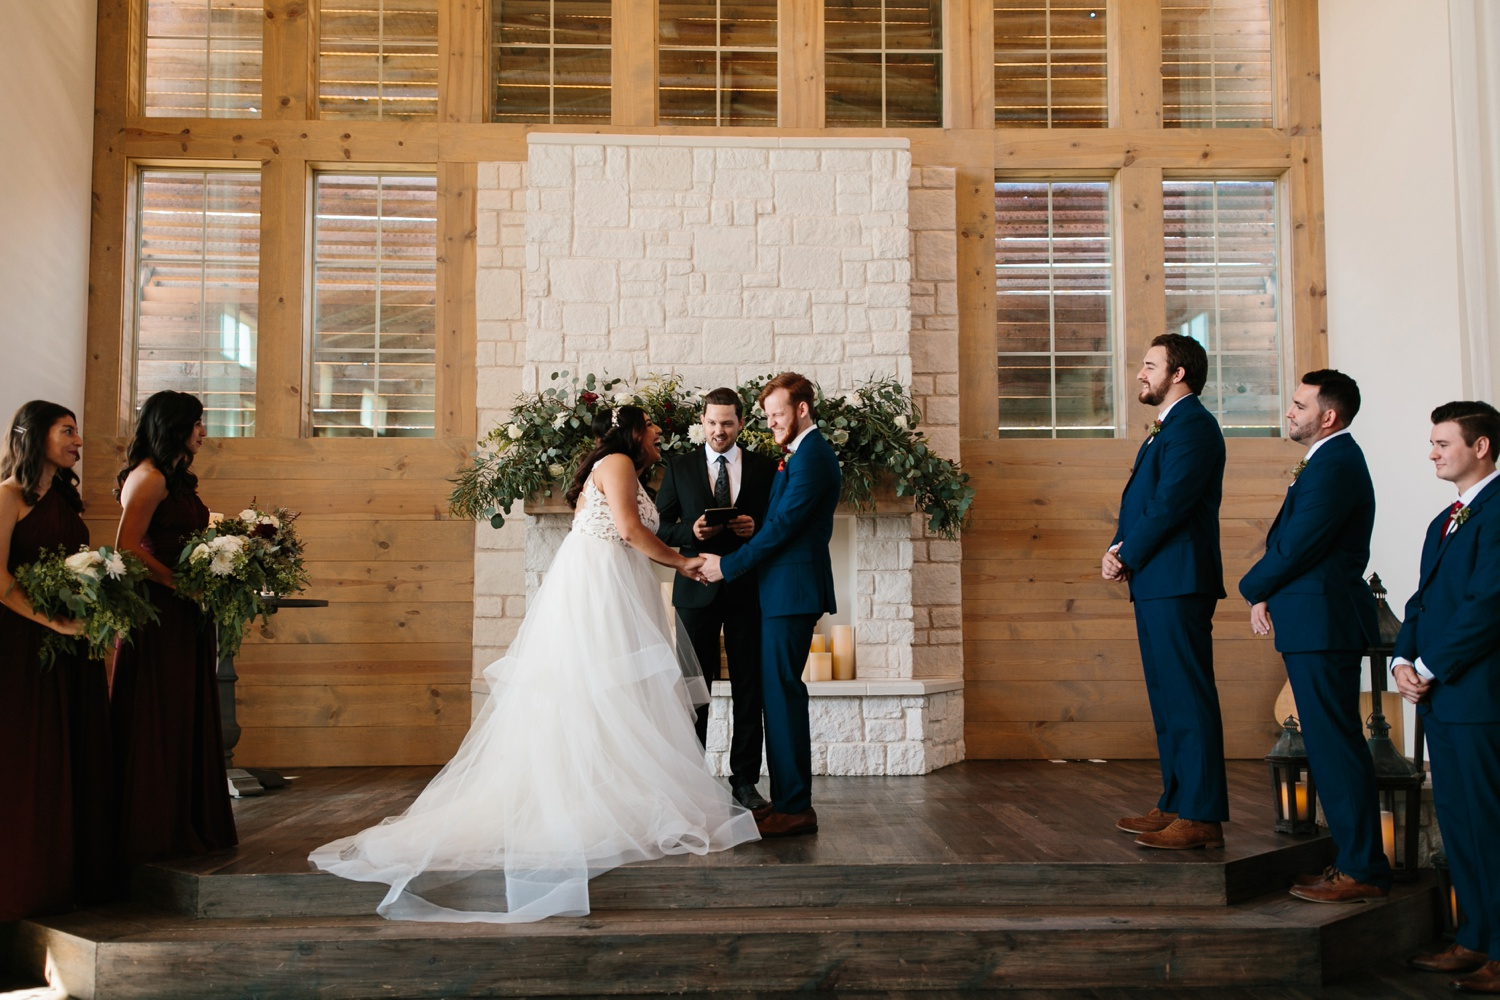 Grant + Lysette | a vibrant, deep burgundy and navy, and mixed metals wedding at Hidden Pines Chapel by North Texas Wedding Photographer Rachel Meagan Photography 081